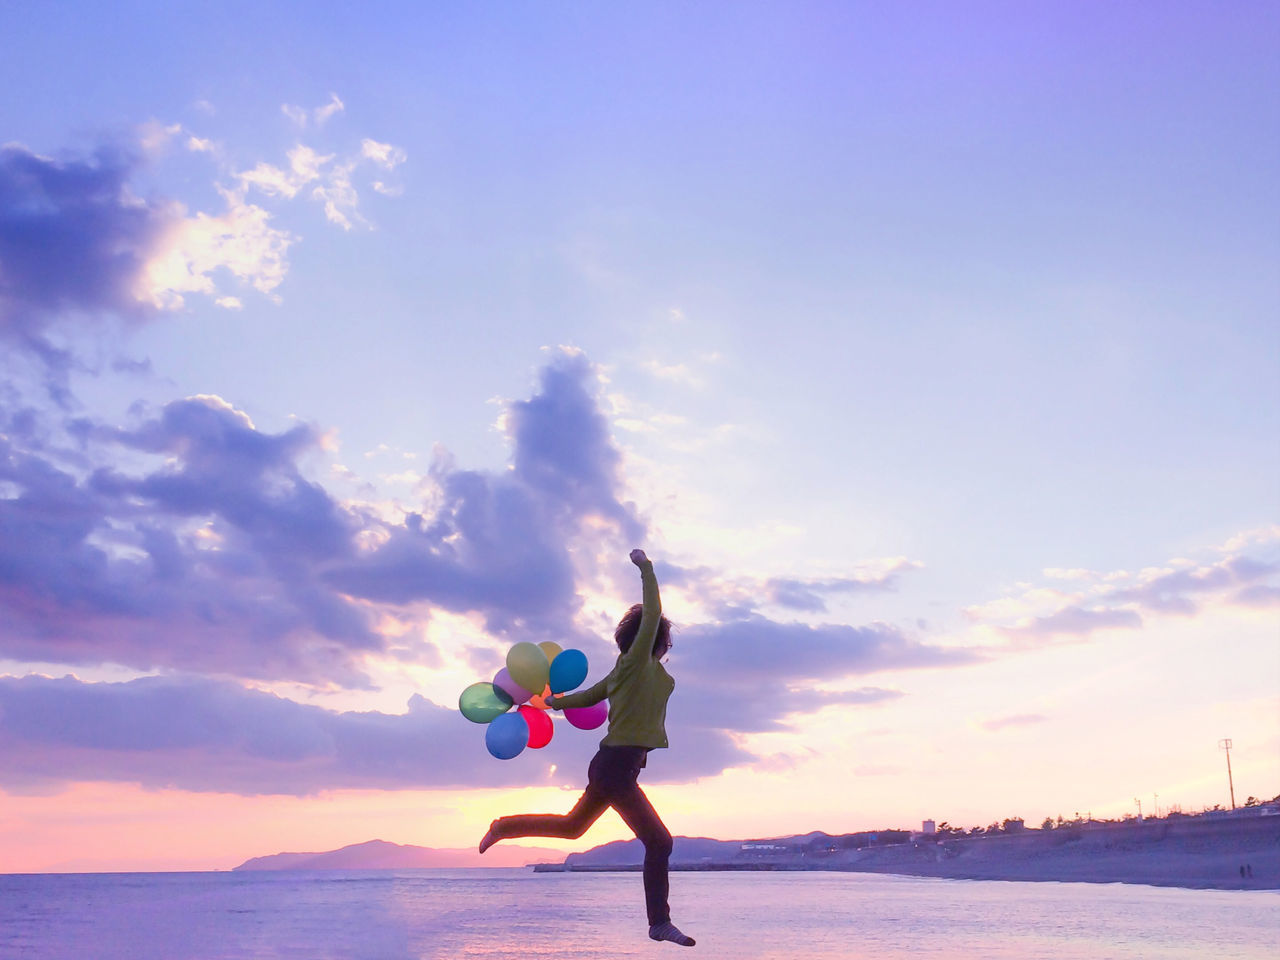 Festive Season EyeEm Best Shots Balloons Sunset_collection EyeEm Best Shots - Sunsets + Sunrise AMPt_community Everyday Joy